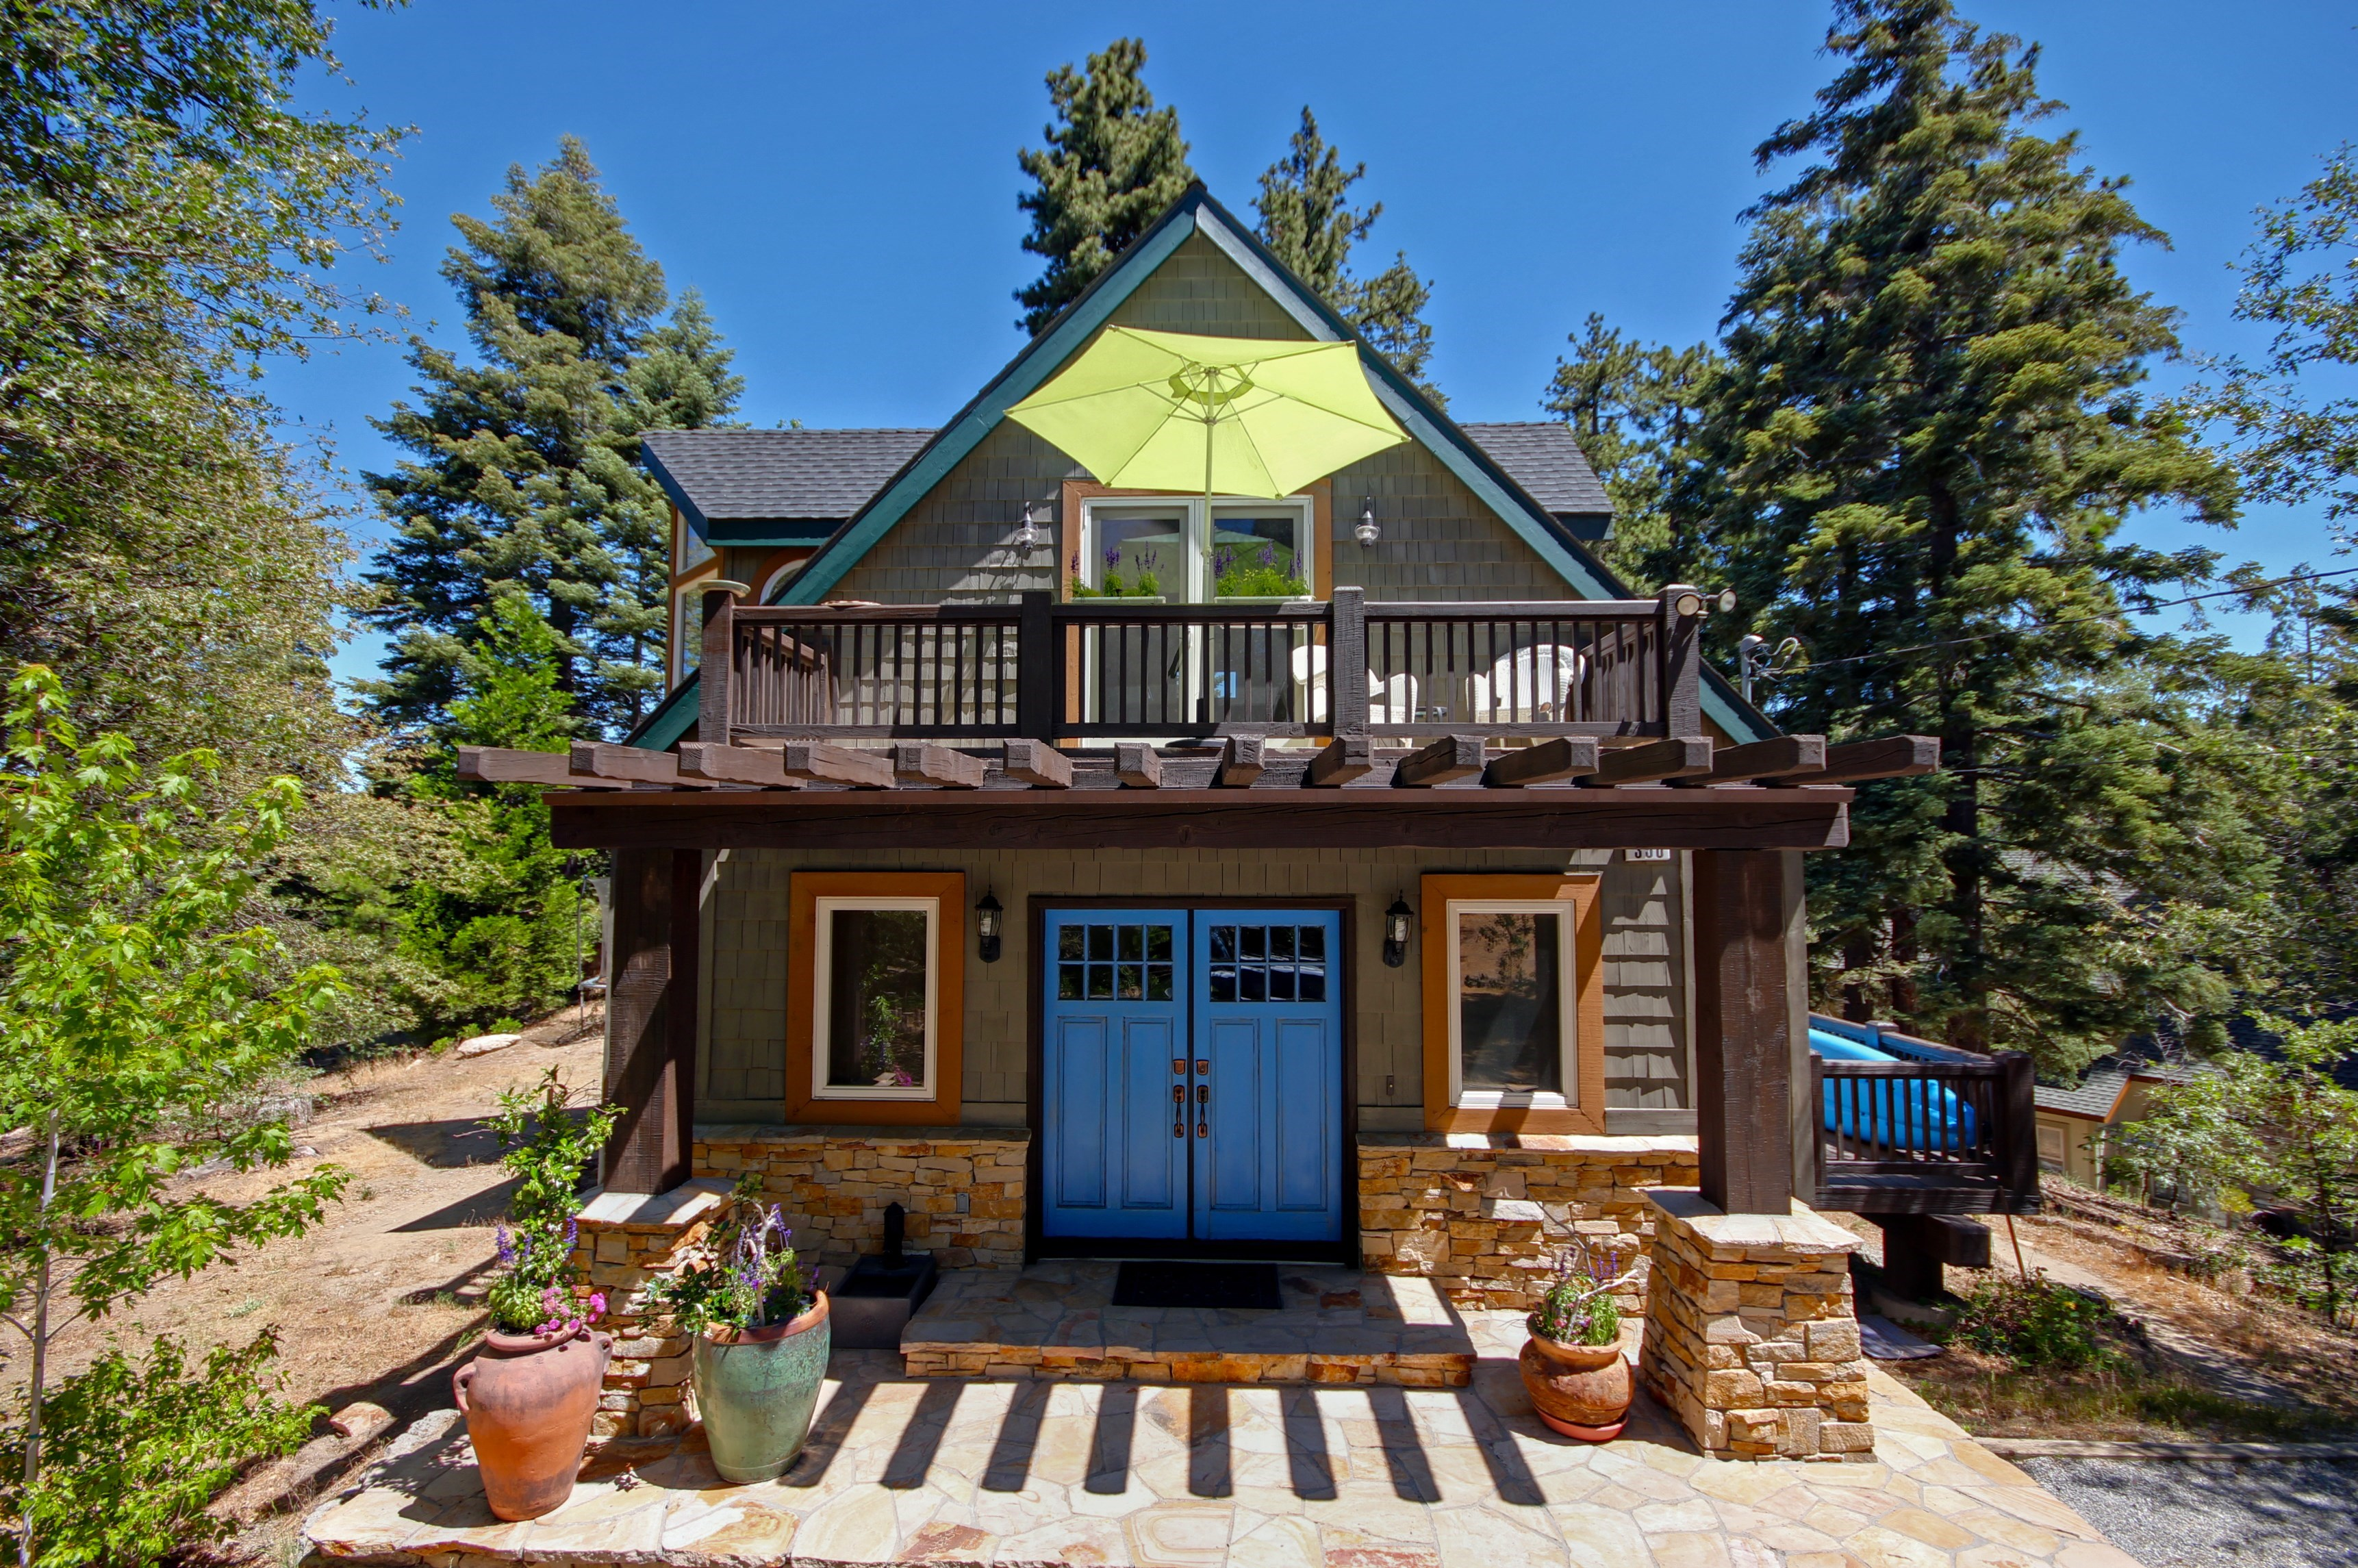 Lake Arrowhead Homes For Sale How Many How Much M